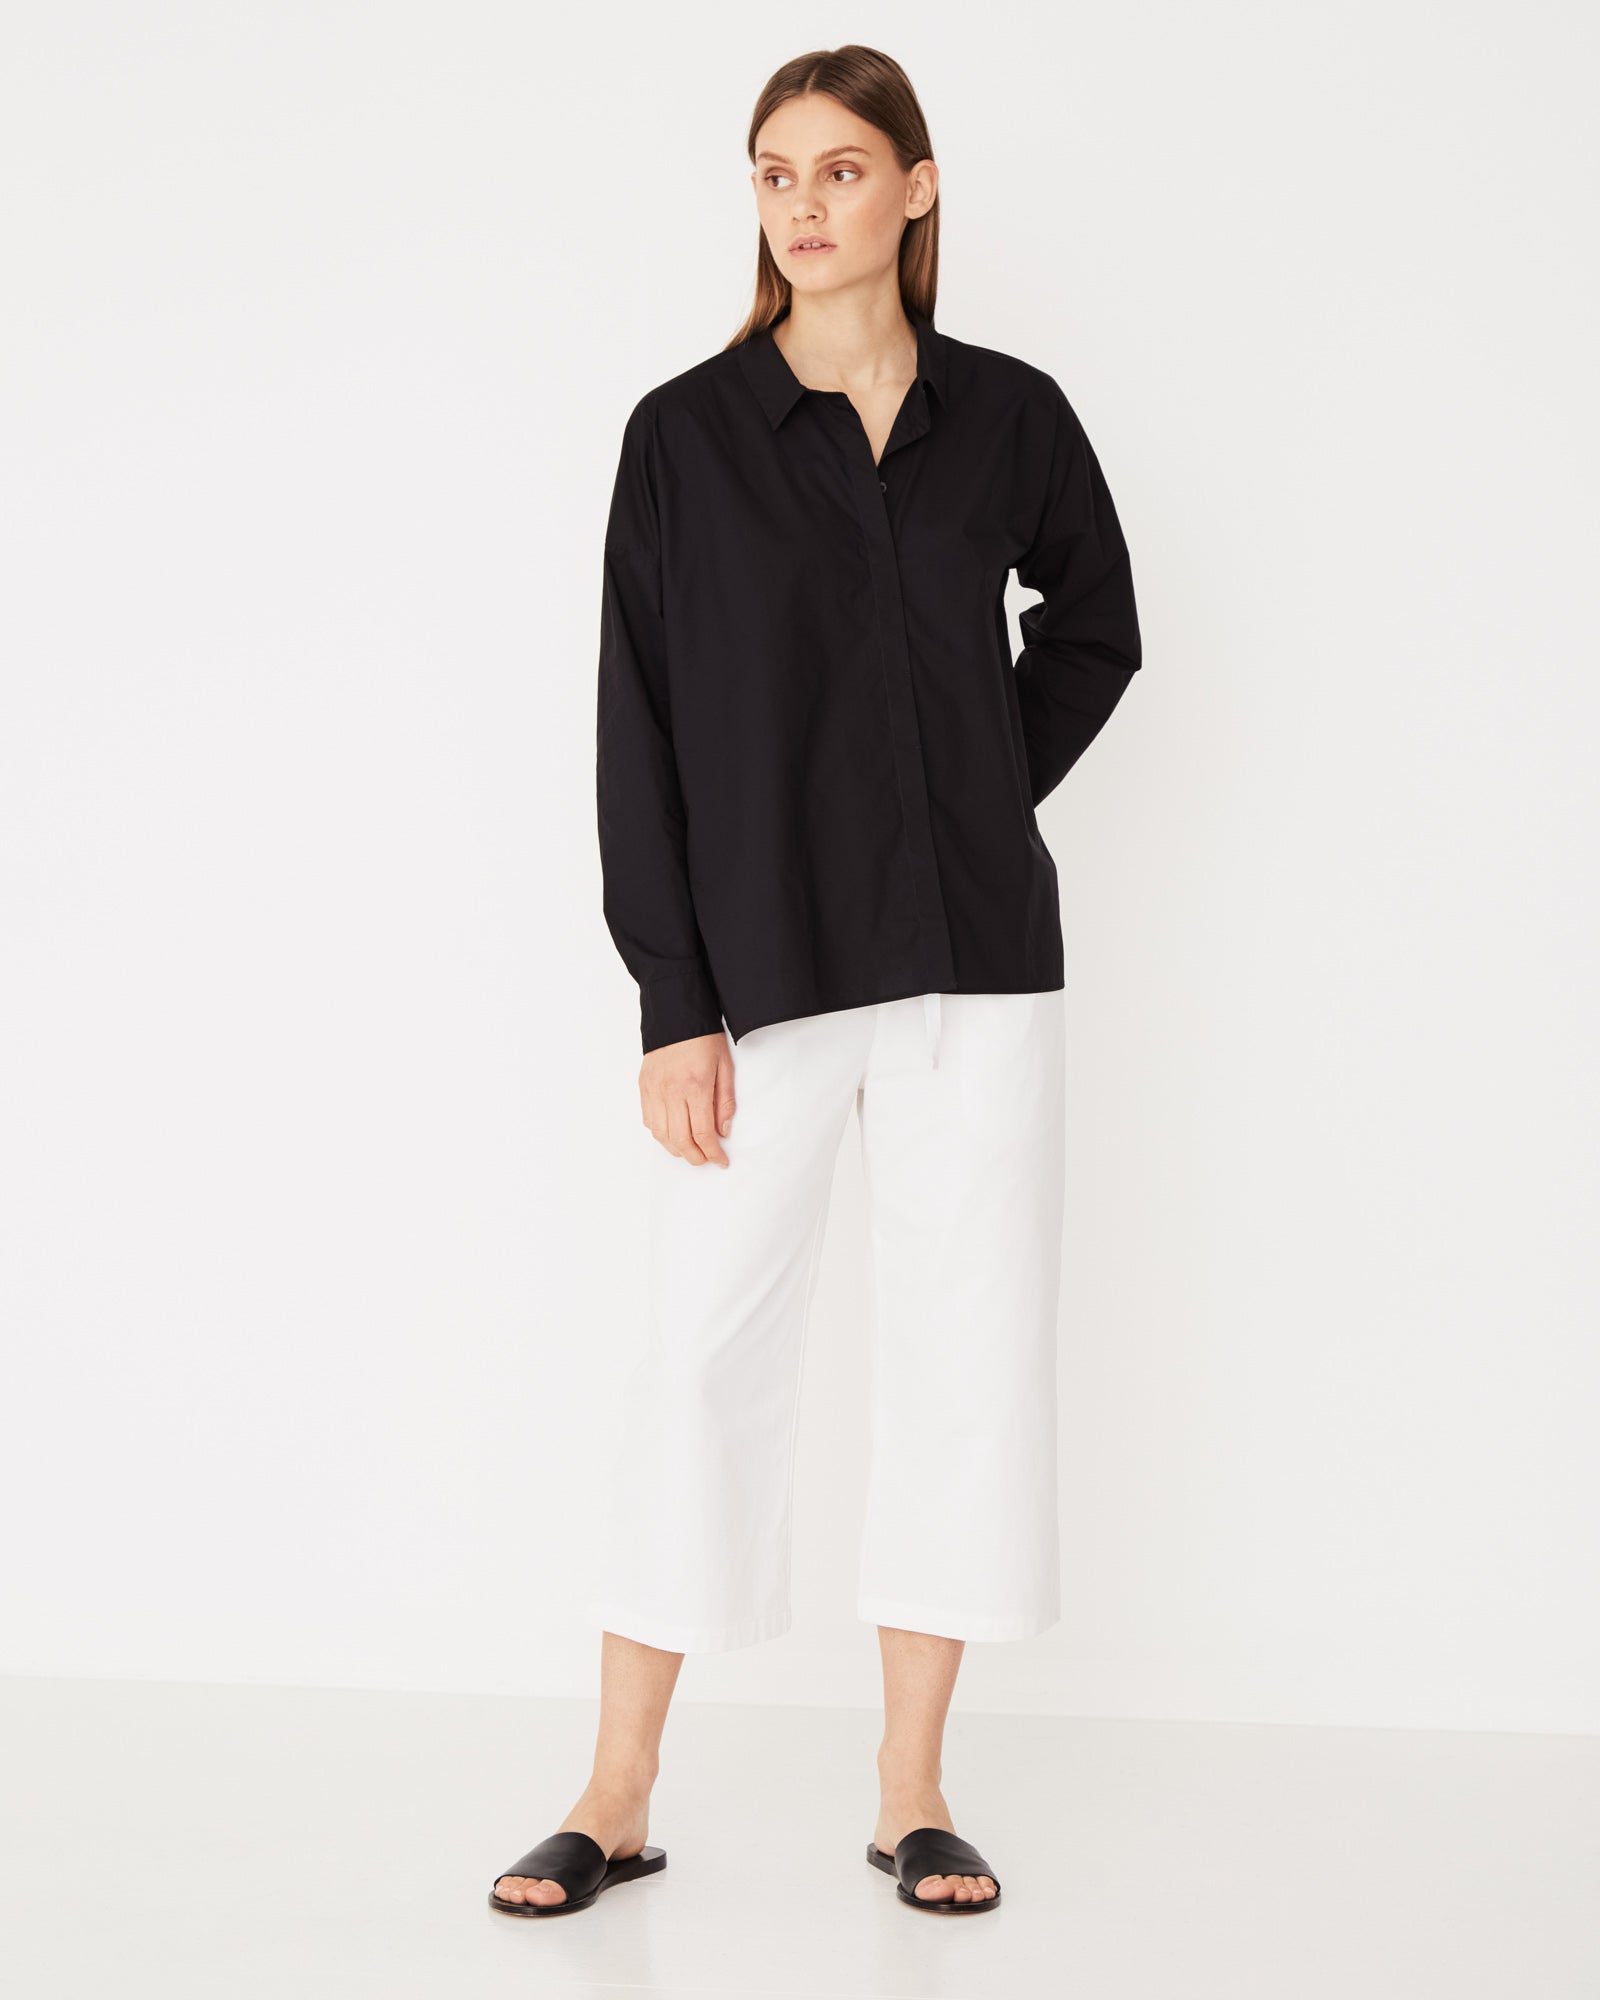 Cotton Voile Long Sleeve Shirt Black